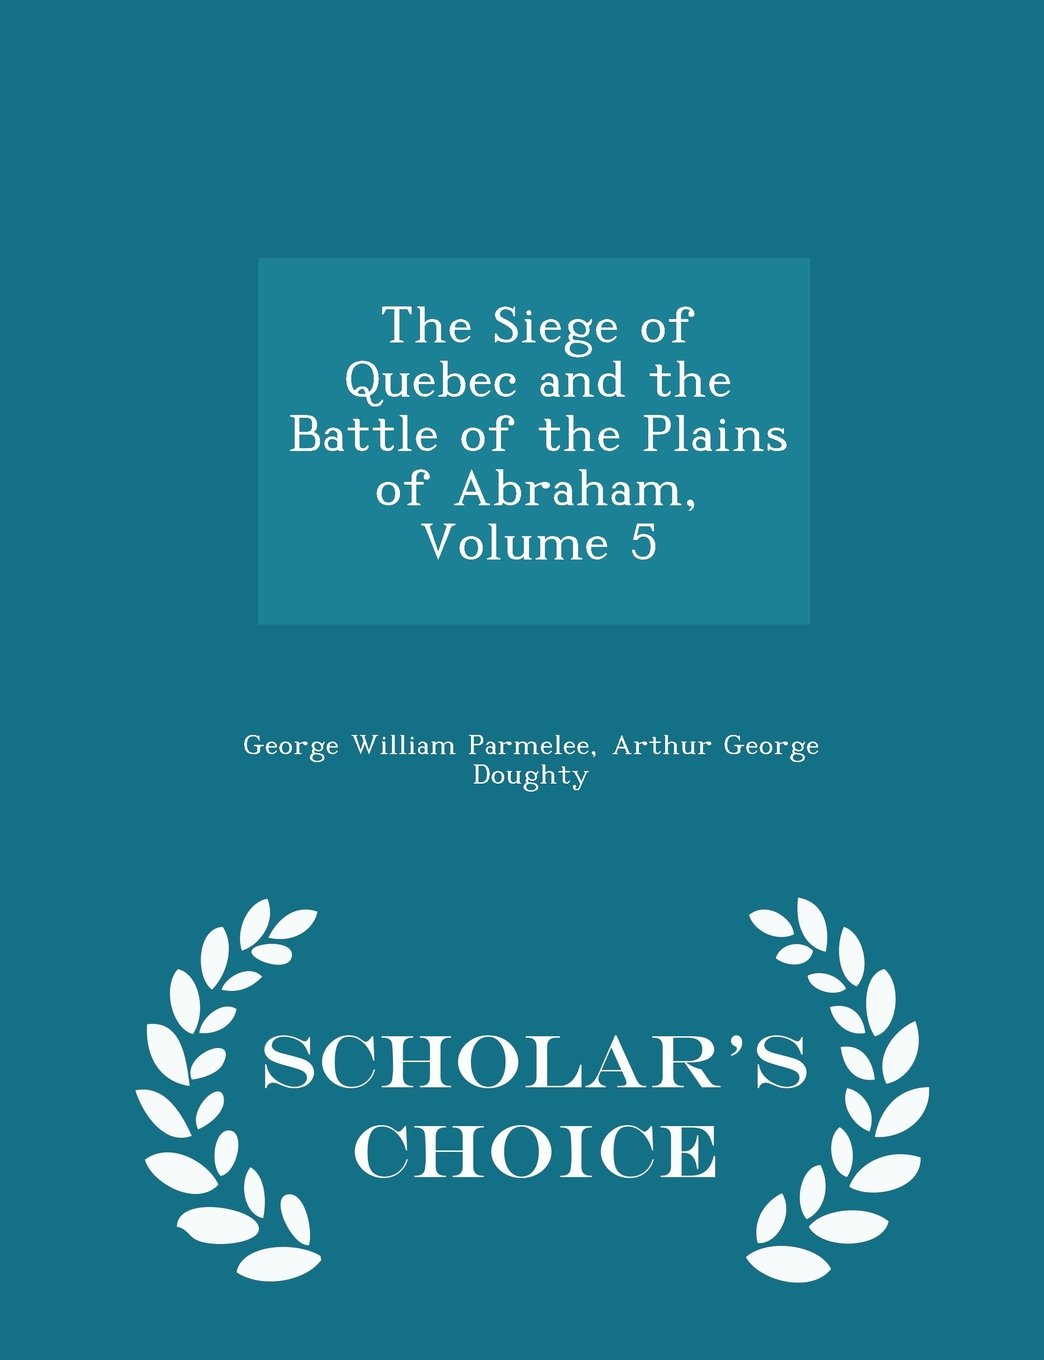 Download The Siege of Quebec and the Battle of the Plains of Abraham, Volume 5 - Scholar's Choice Edition ebook